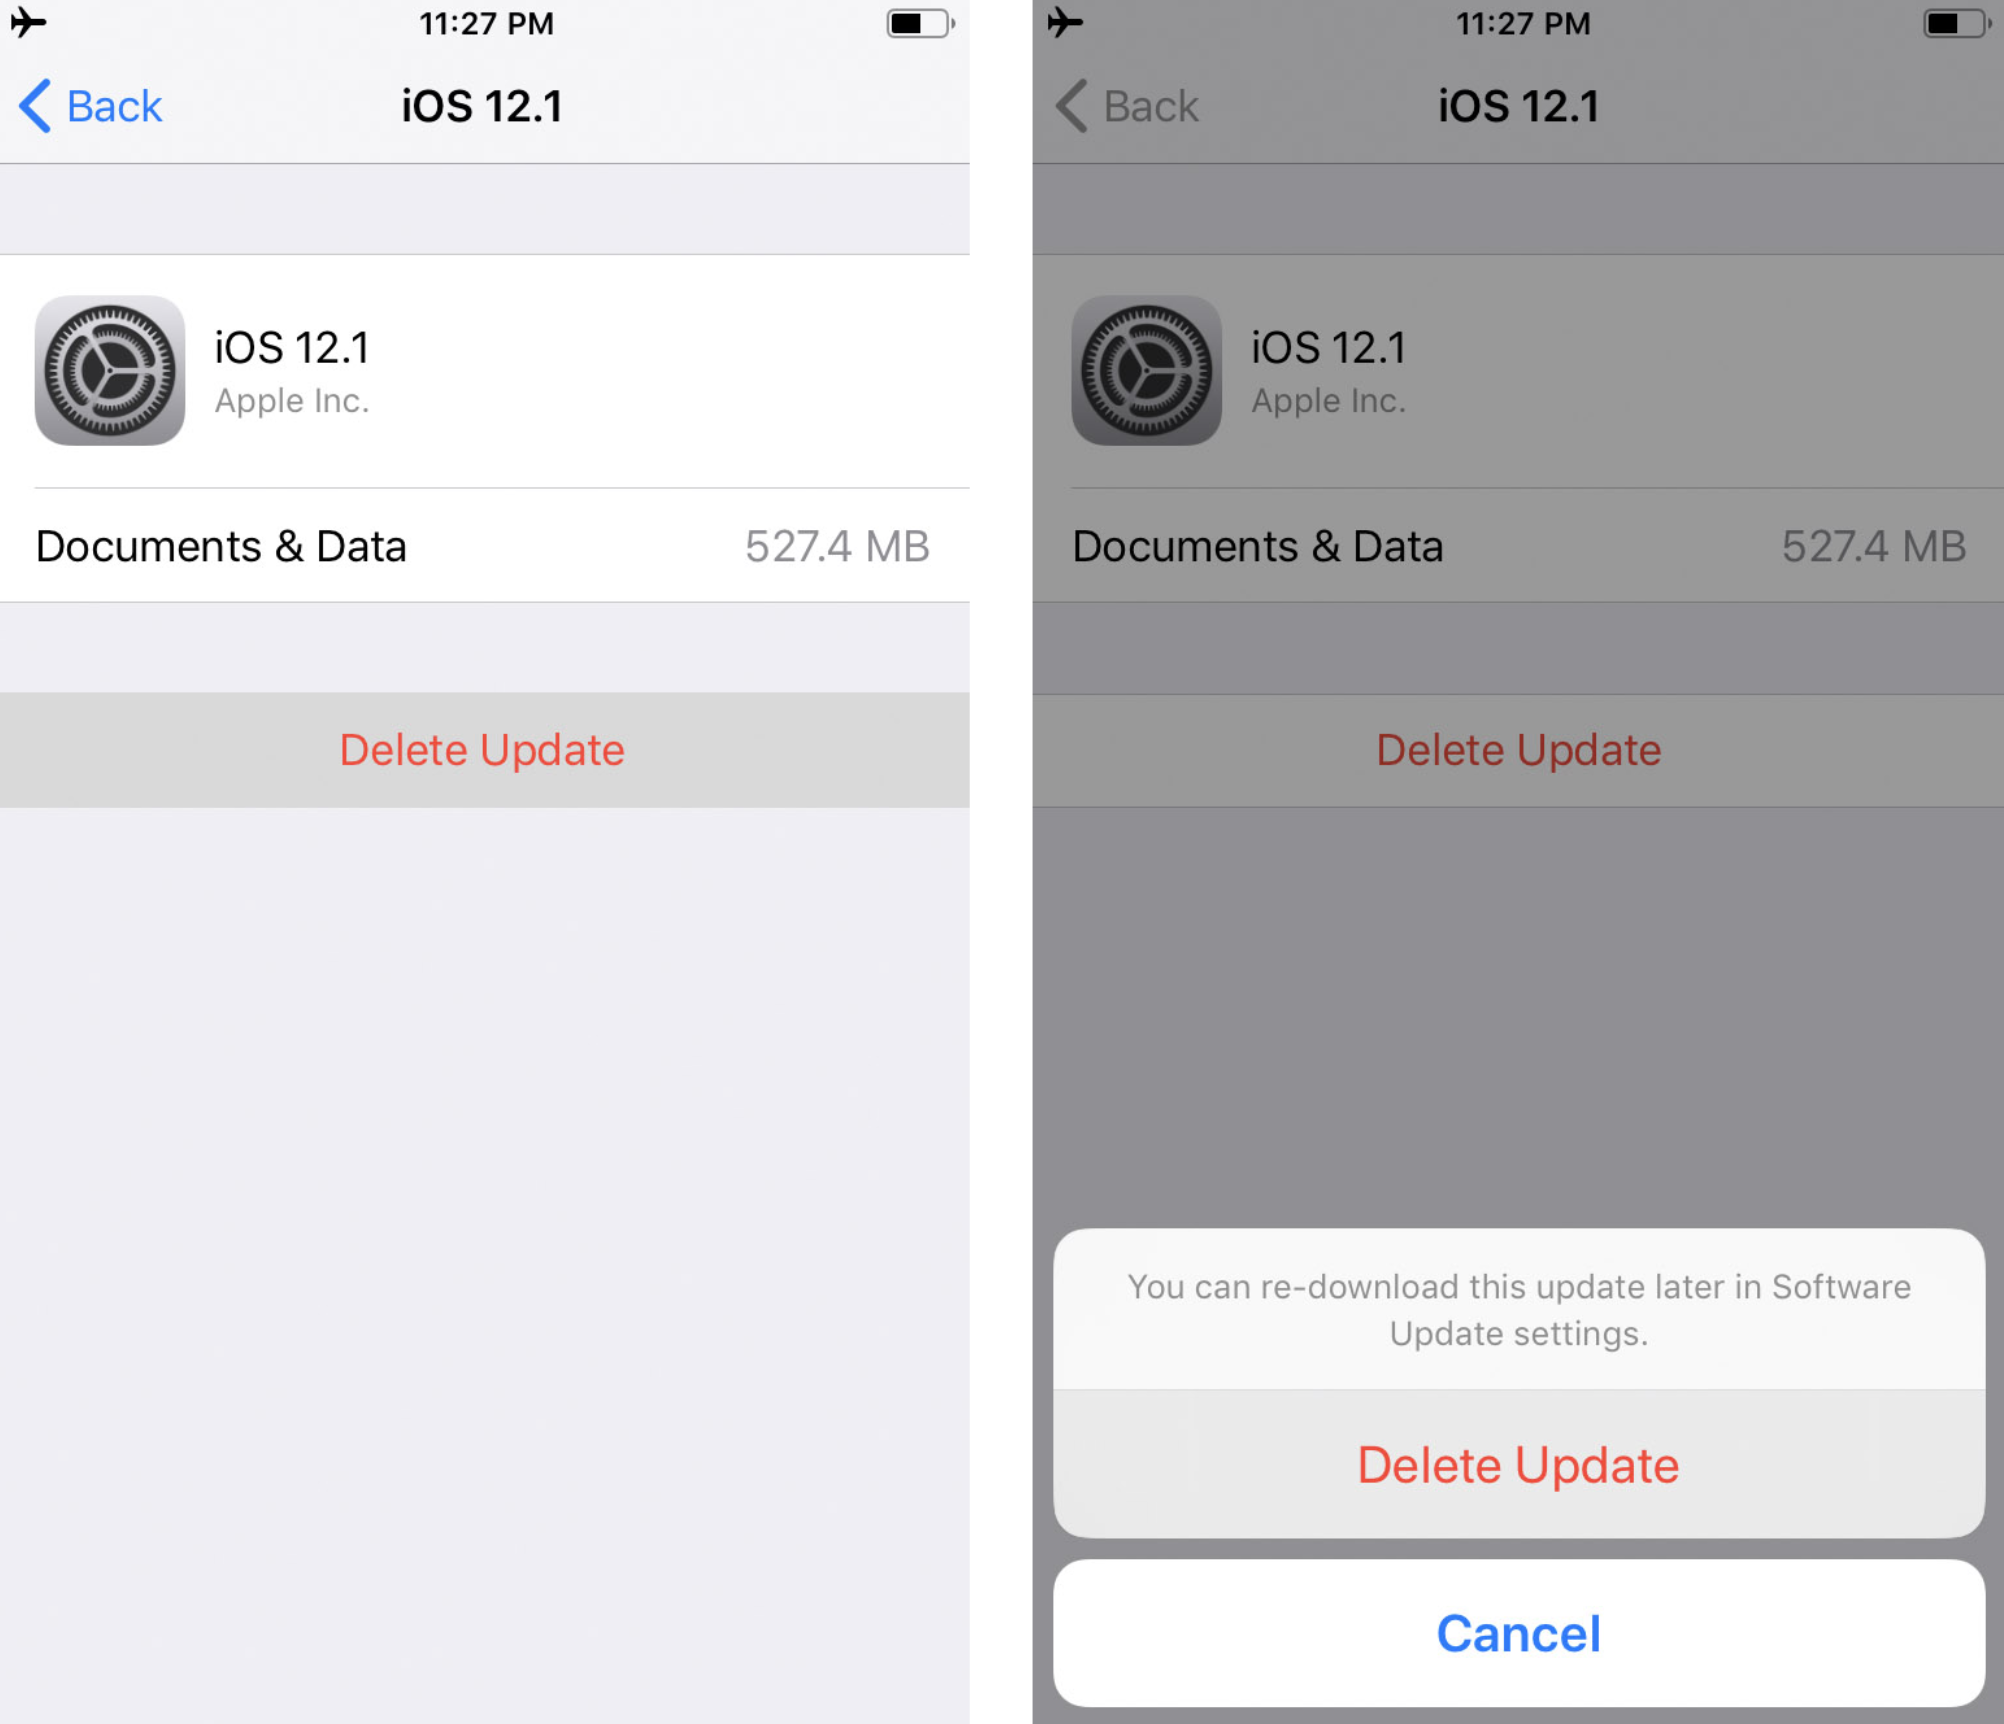 How to Stop an iOS Software Update That Has Already Started Downloading